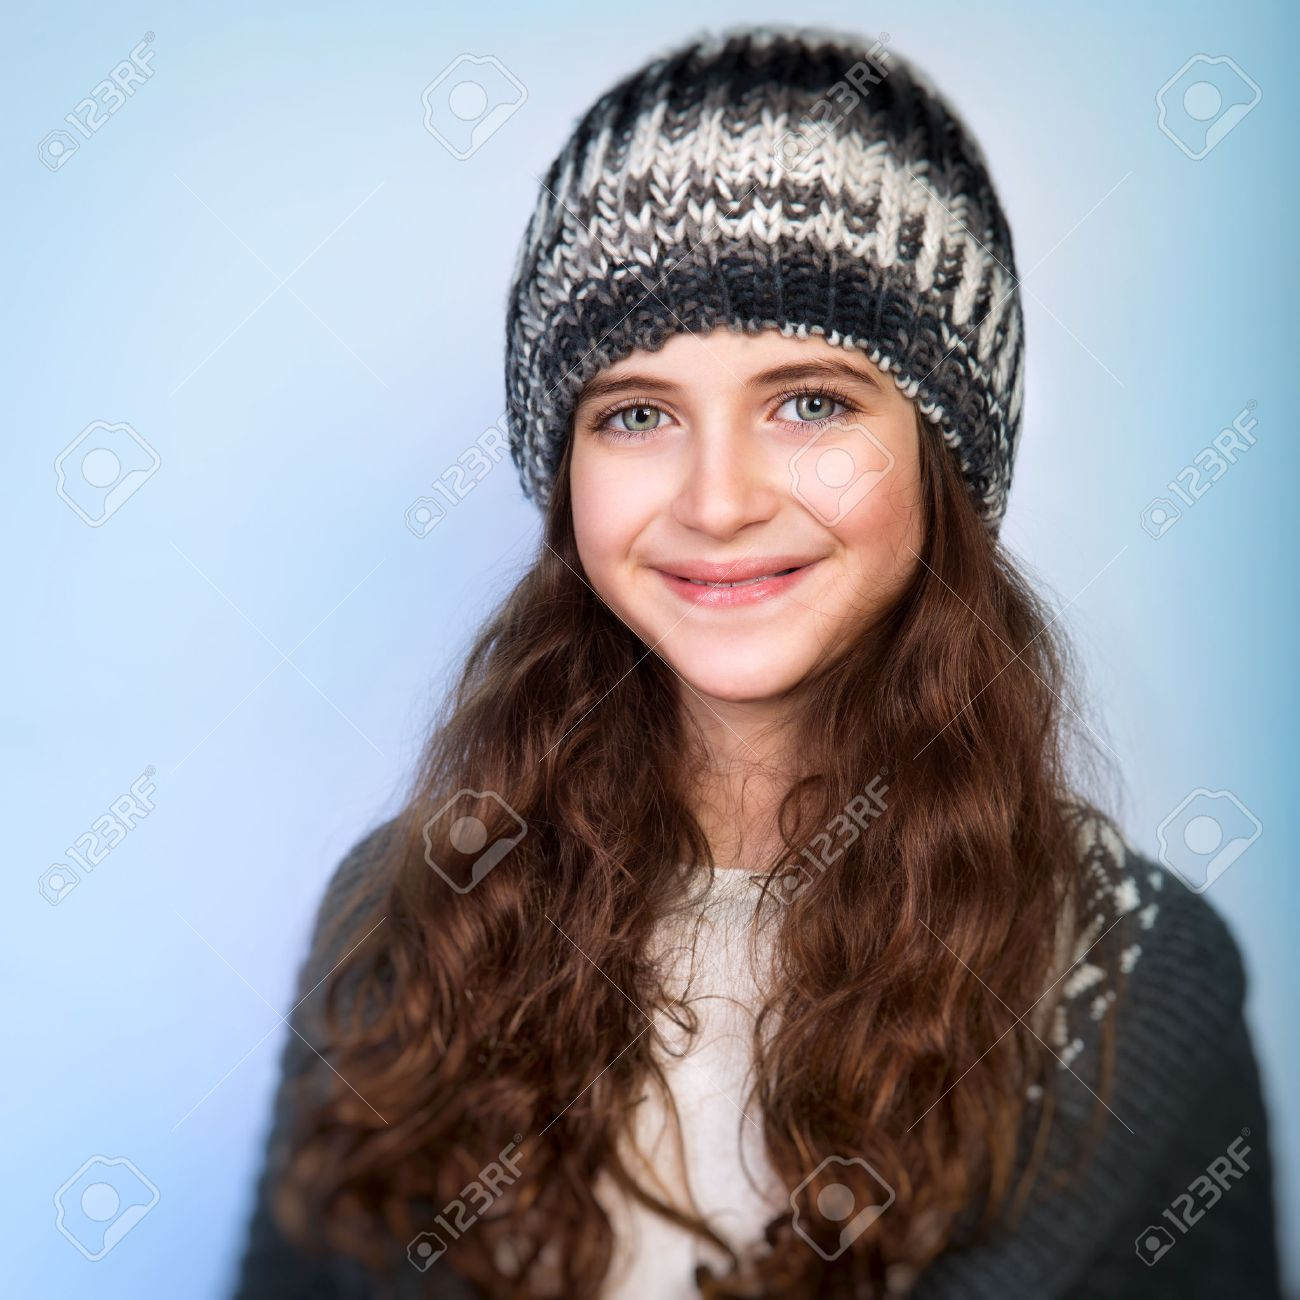 teen girl: Portrait of cute teen girl wearing stylish knitted hat and  sweater isolated on